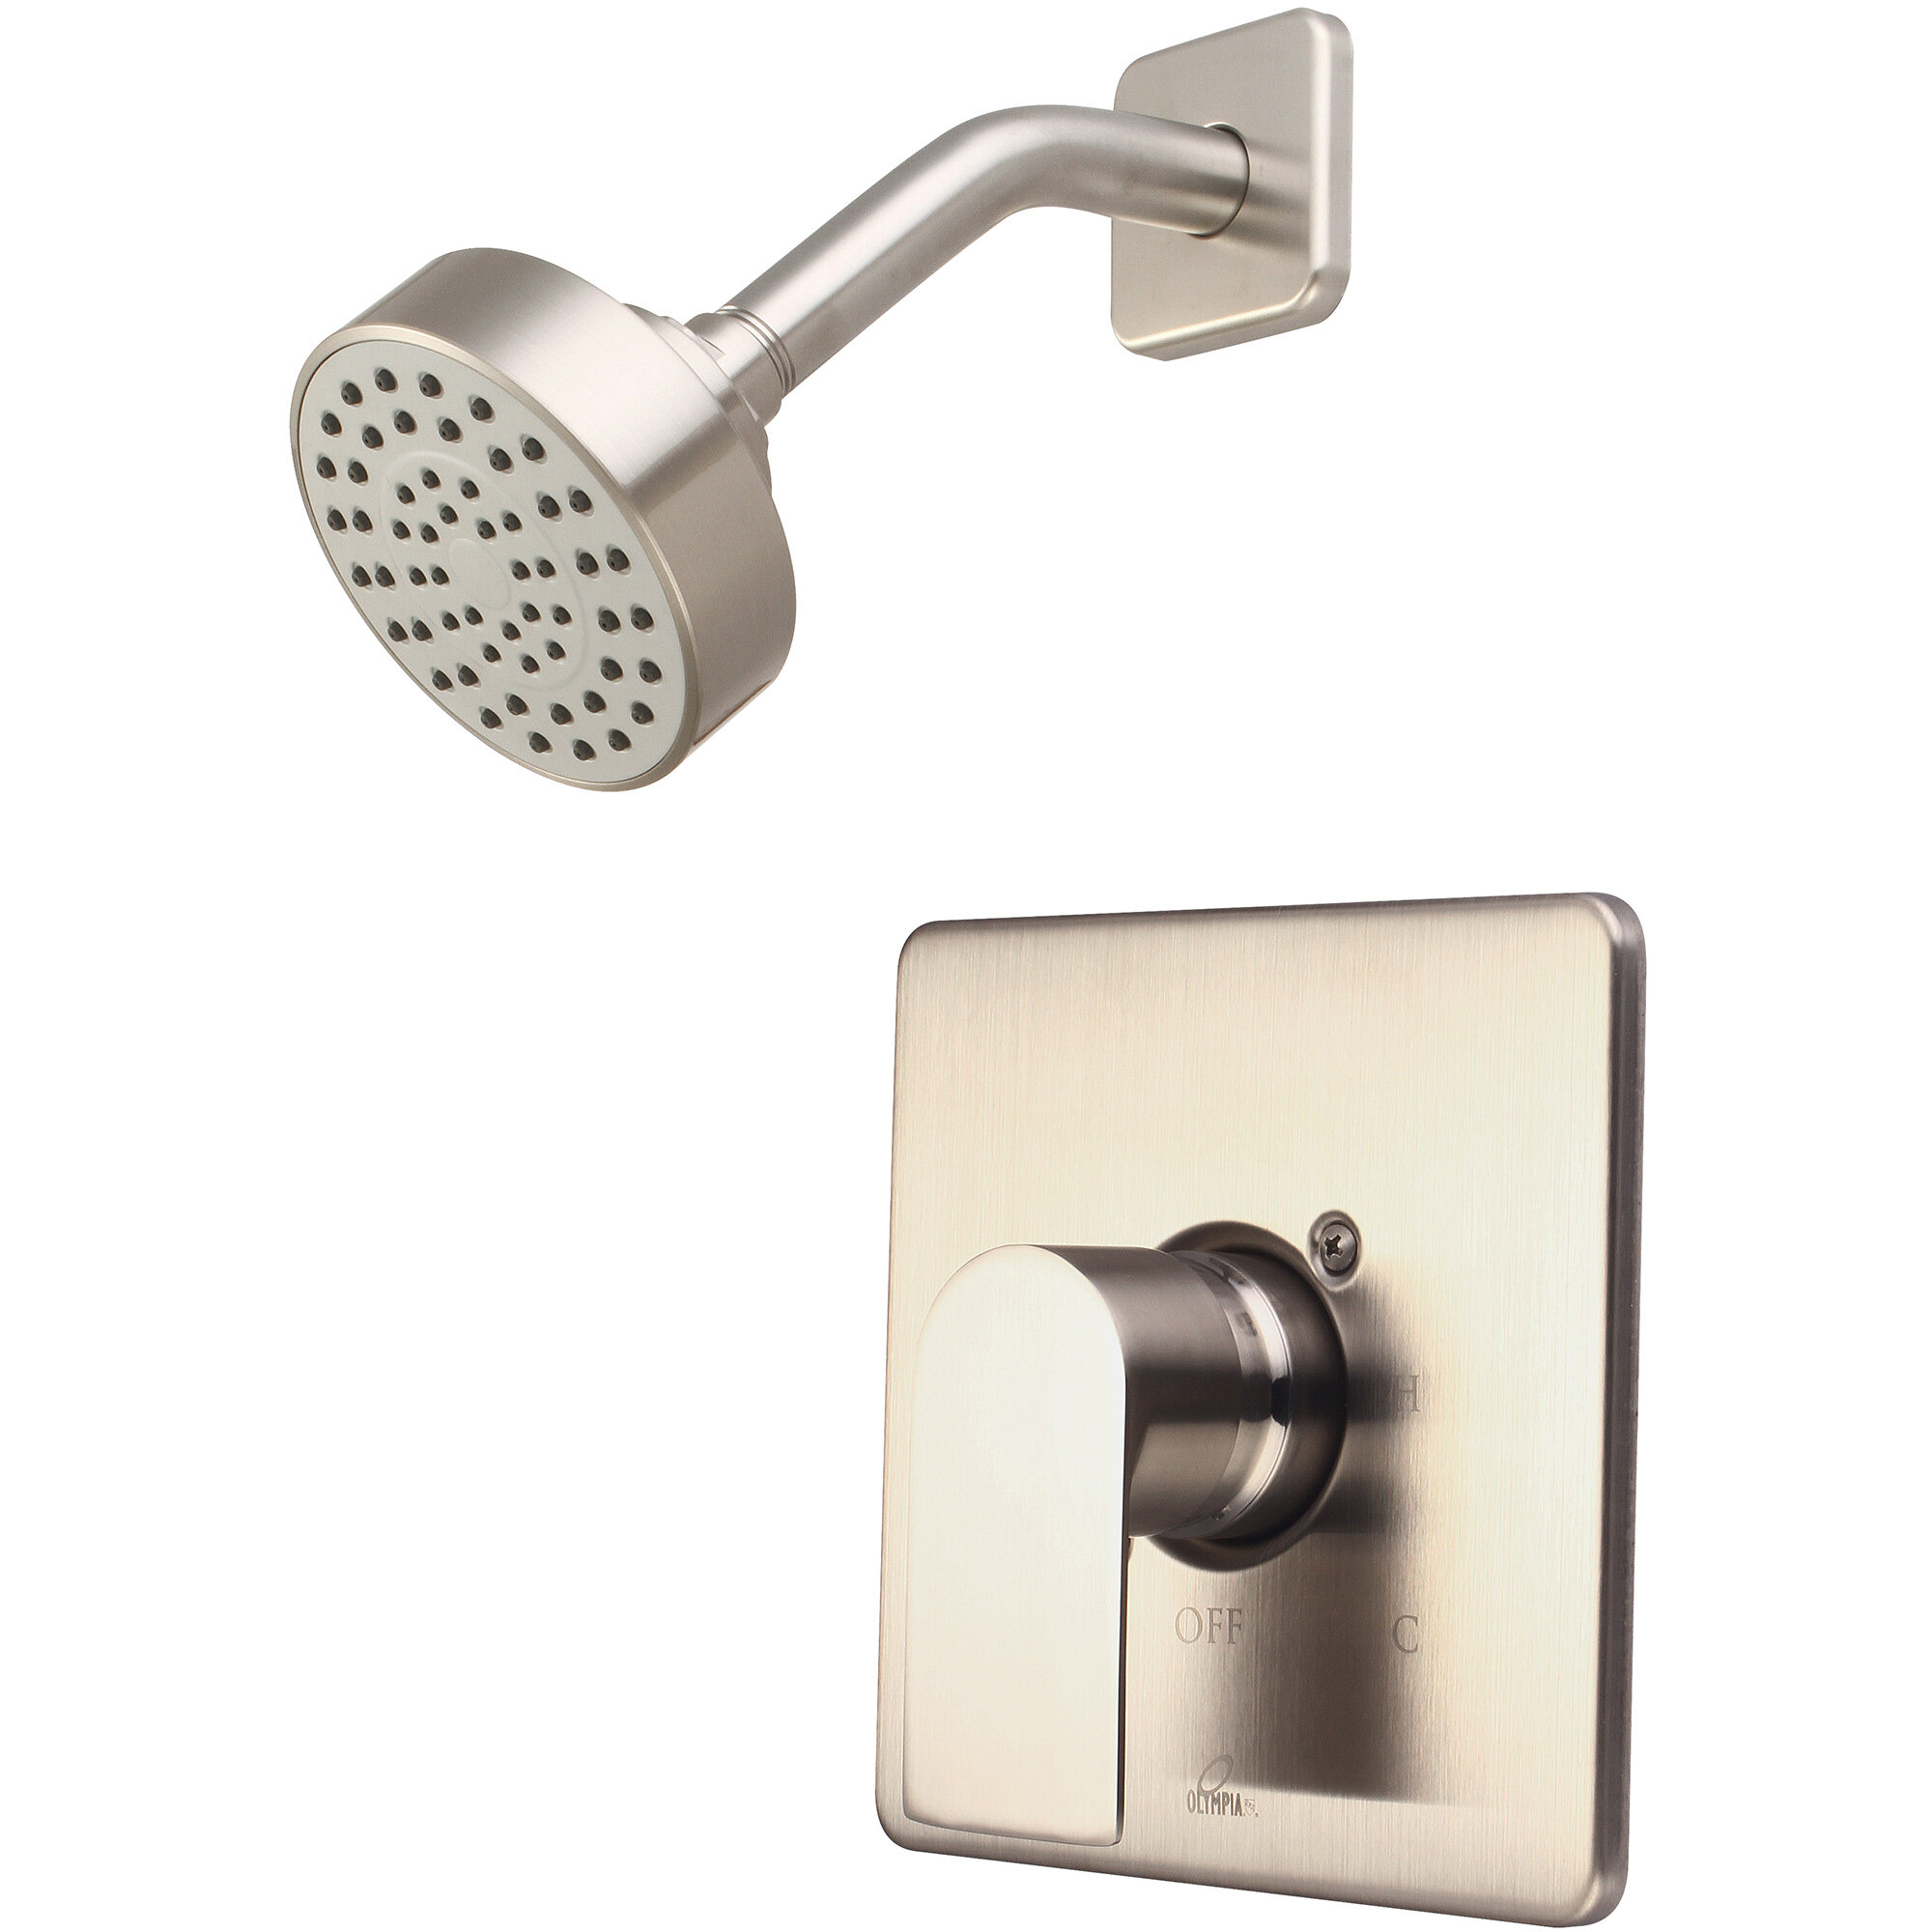 Olympia Faucets I4 Single Handle Volume Control Shower Faucet Wayfair